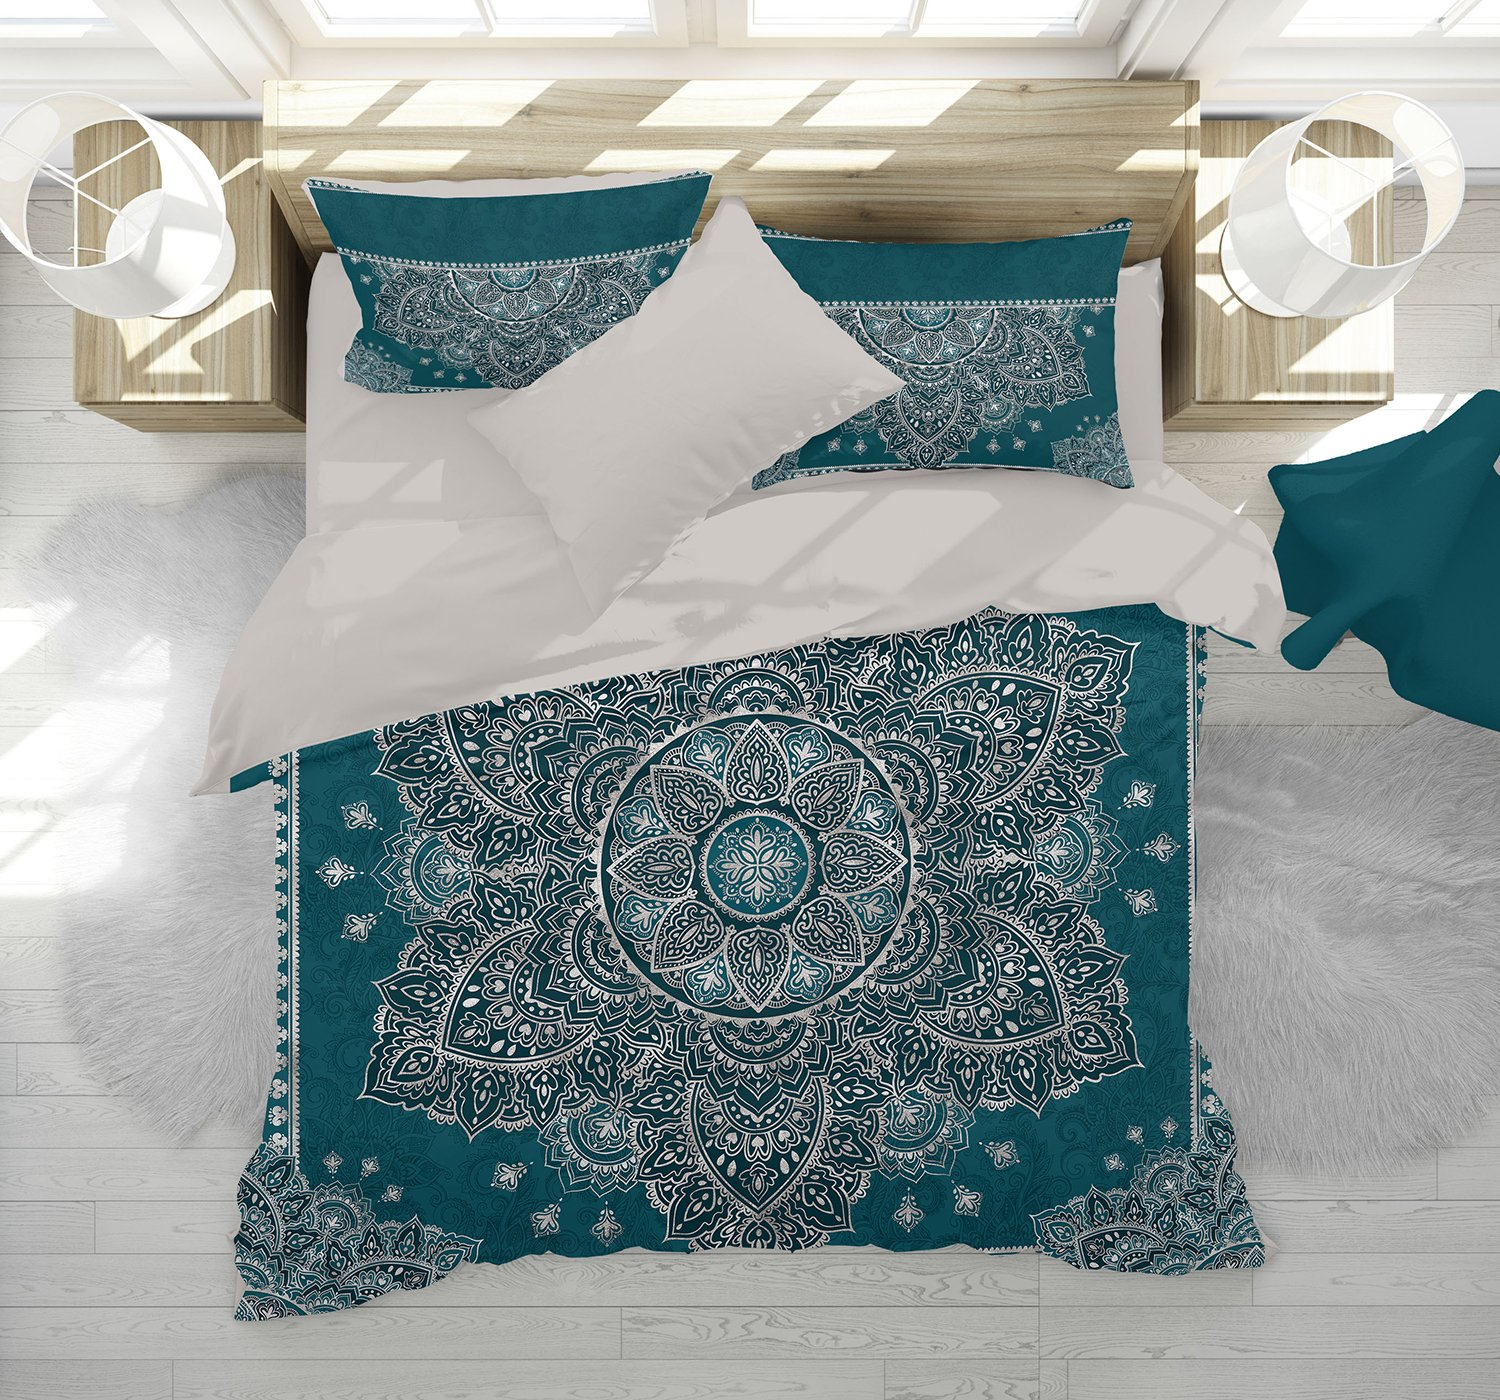 Boho Mandala Bedding, Dark Teal Graphite Silver Mandala Duvet Cover Set, Henna Mehendy Mandala Quilt Cover Set, Boho Bedspread (Black, Twin (68